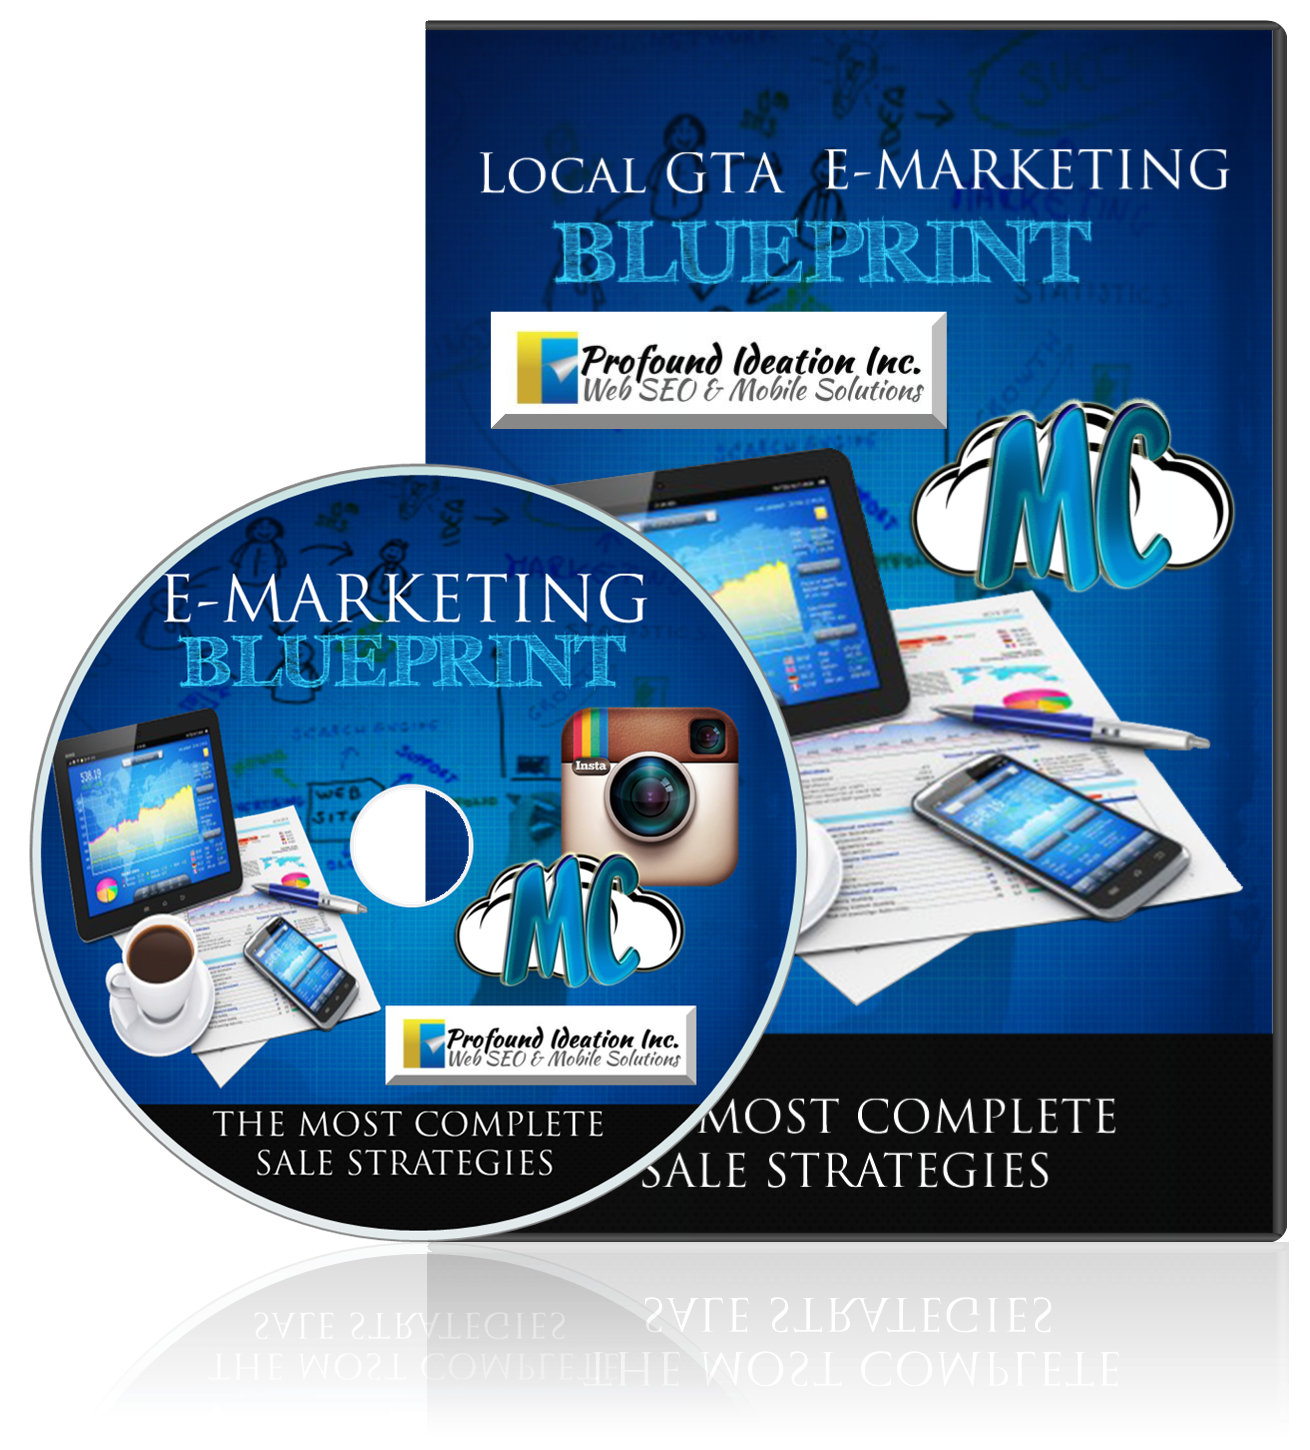 Local GTA Marketing | Profound Ideation Inc.